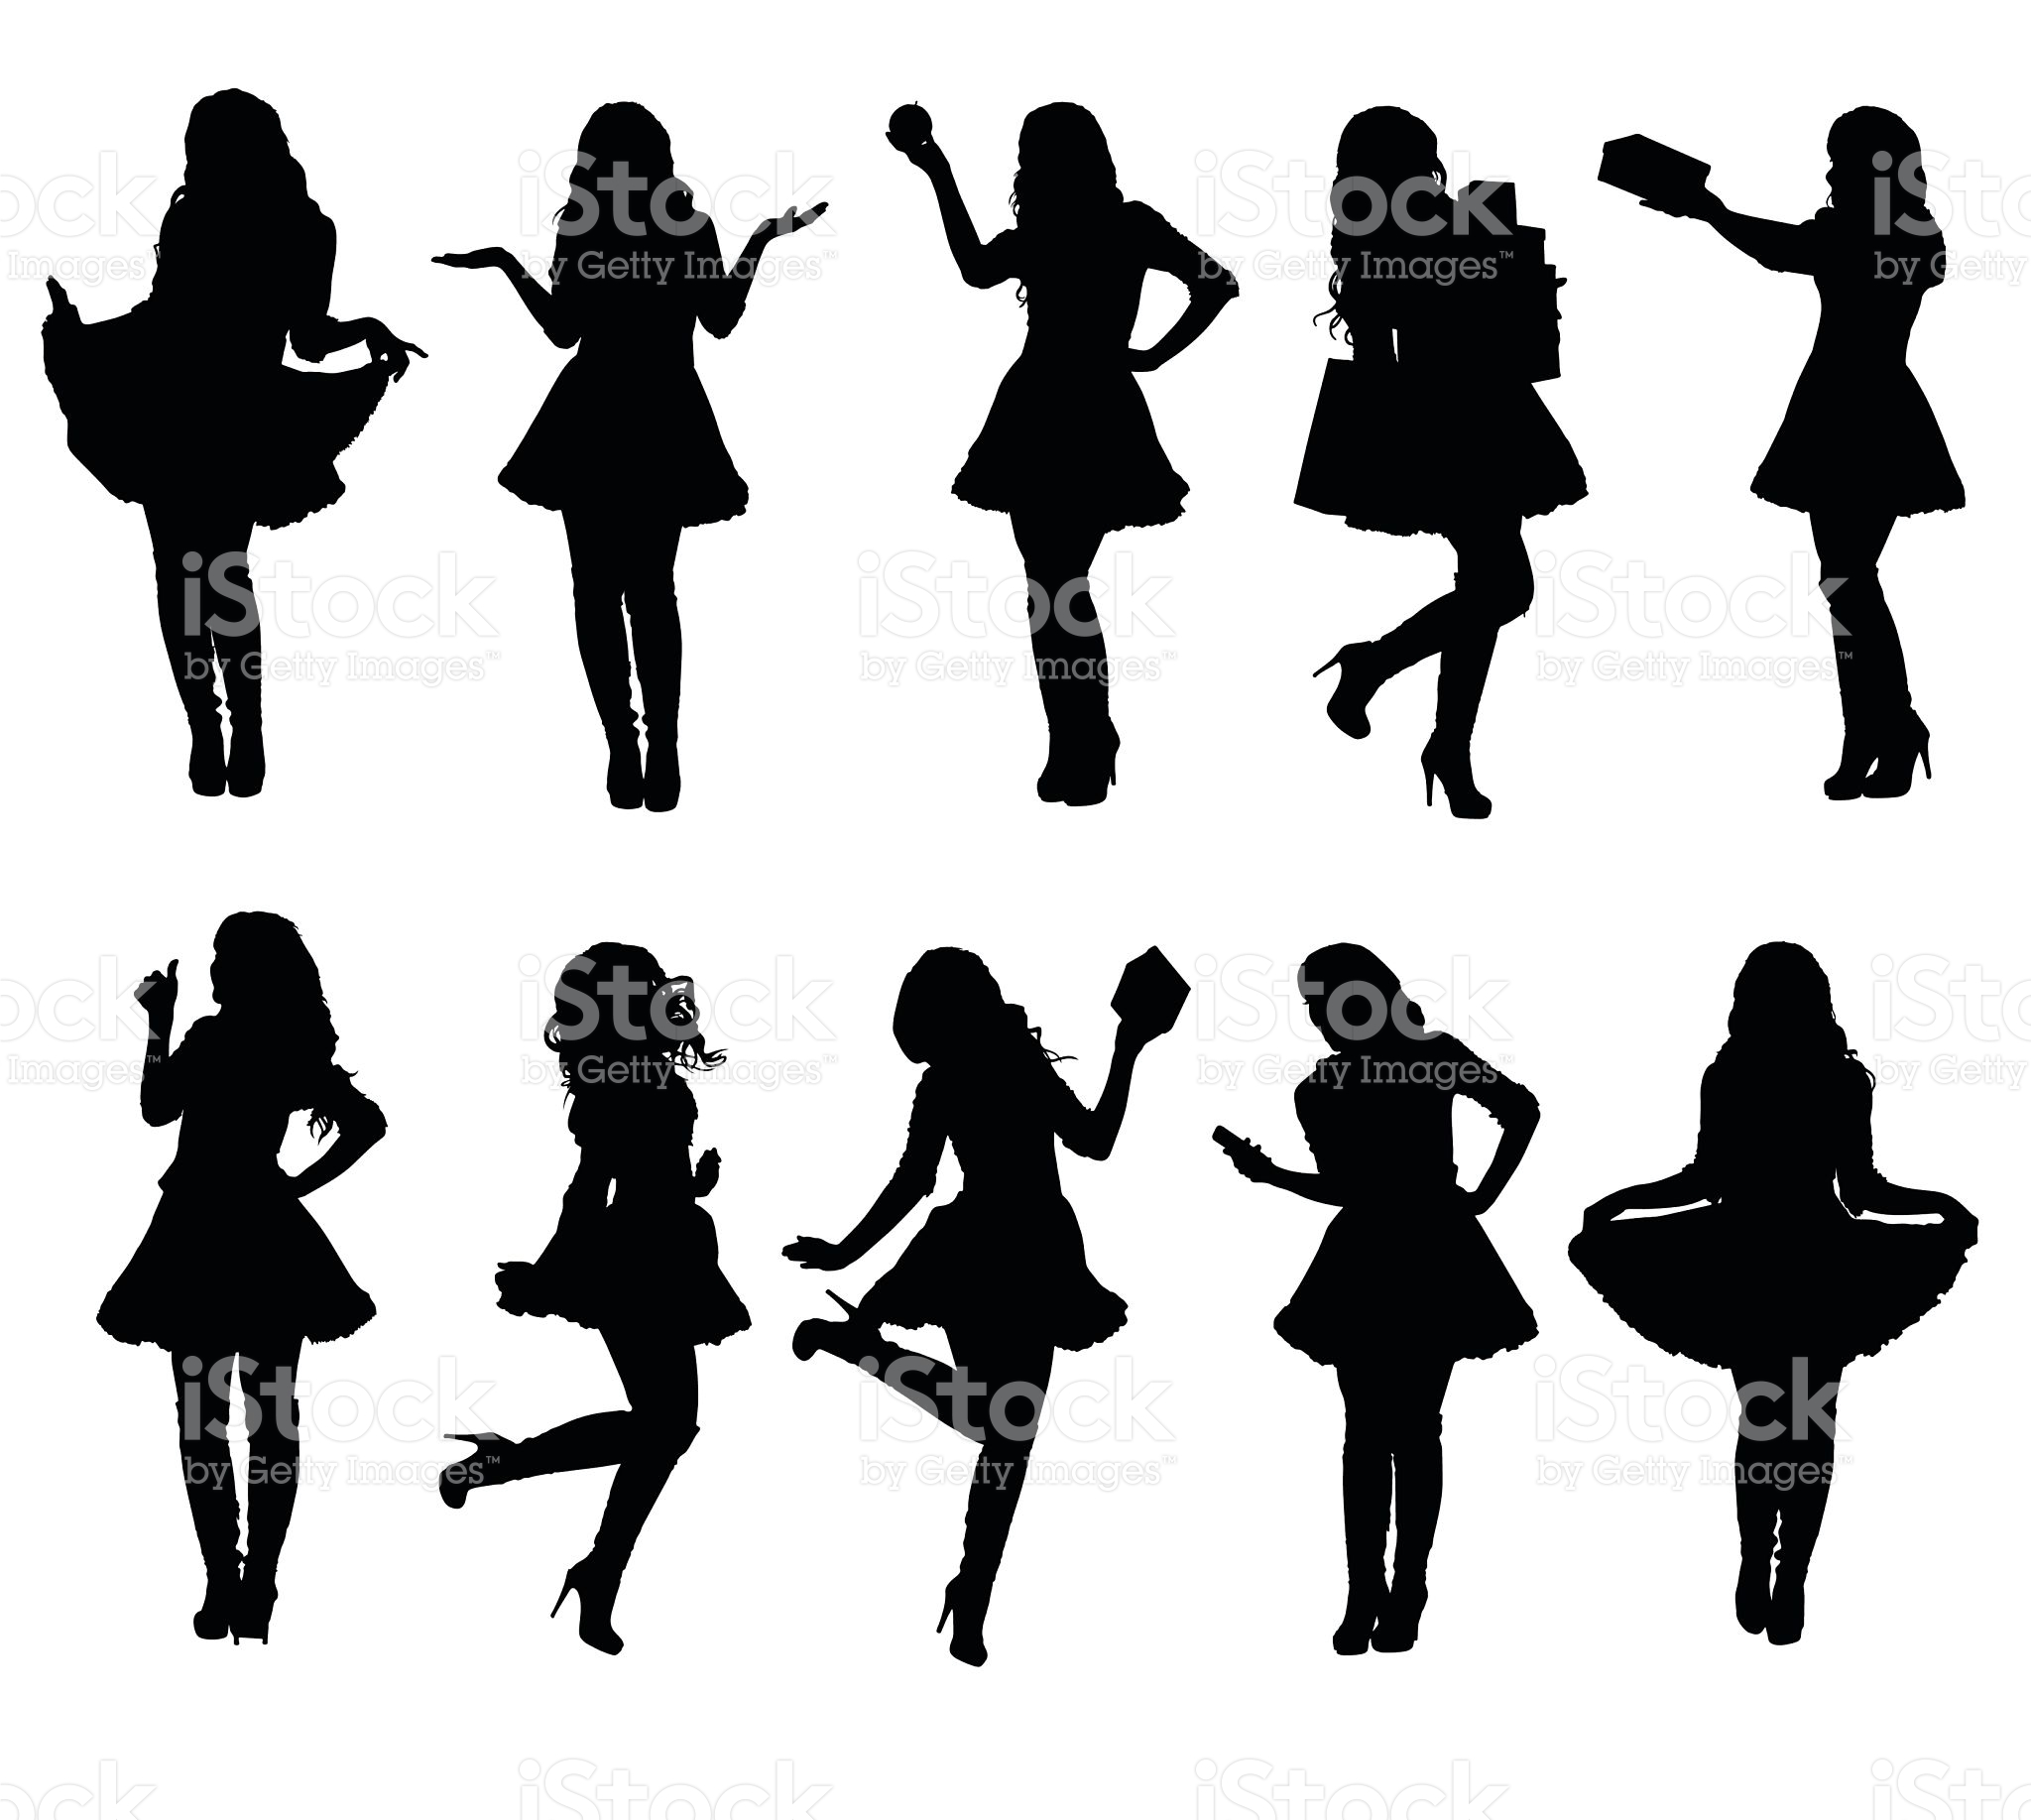 2048x1835 Collection Of Santa Girl Silhouettes In Various Poses. Easy